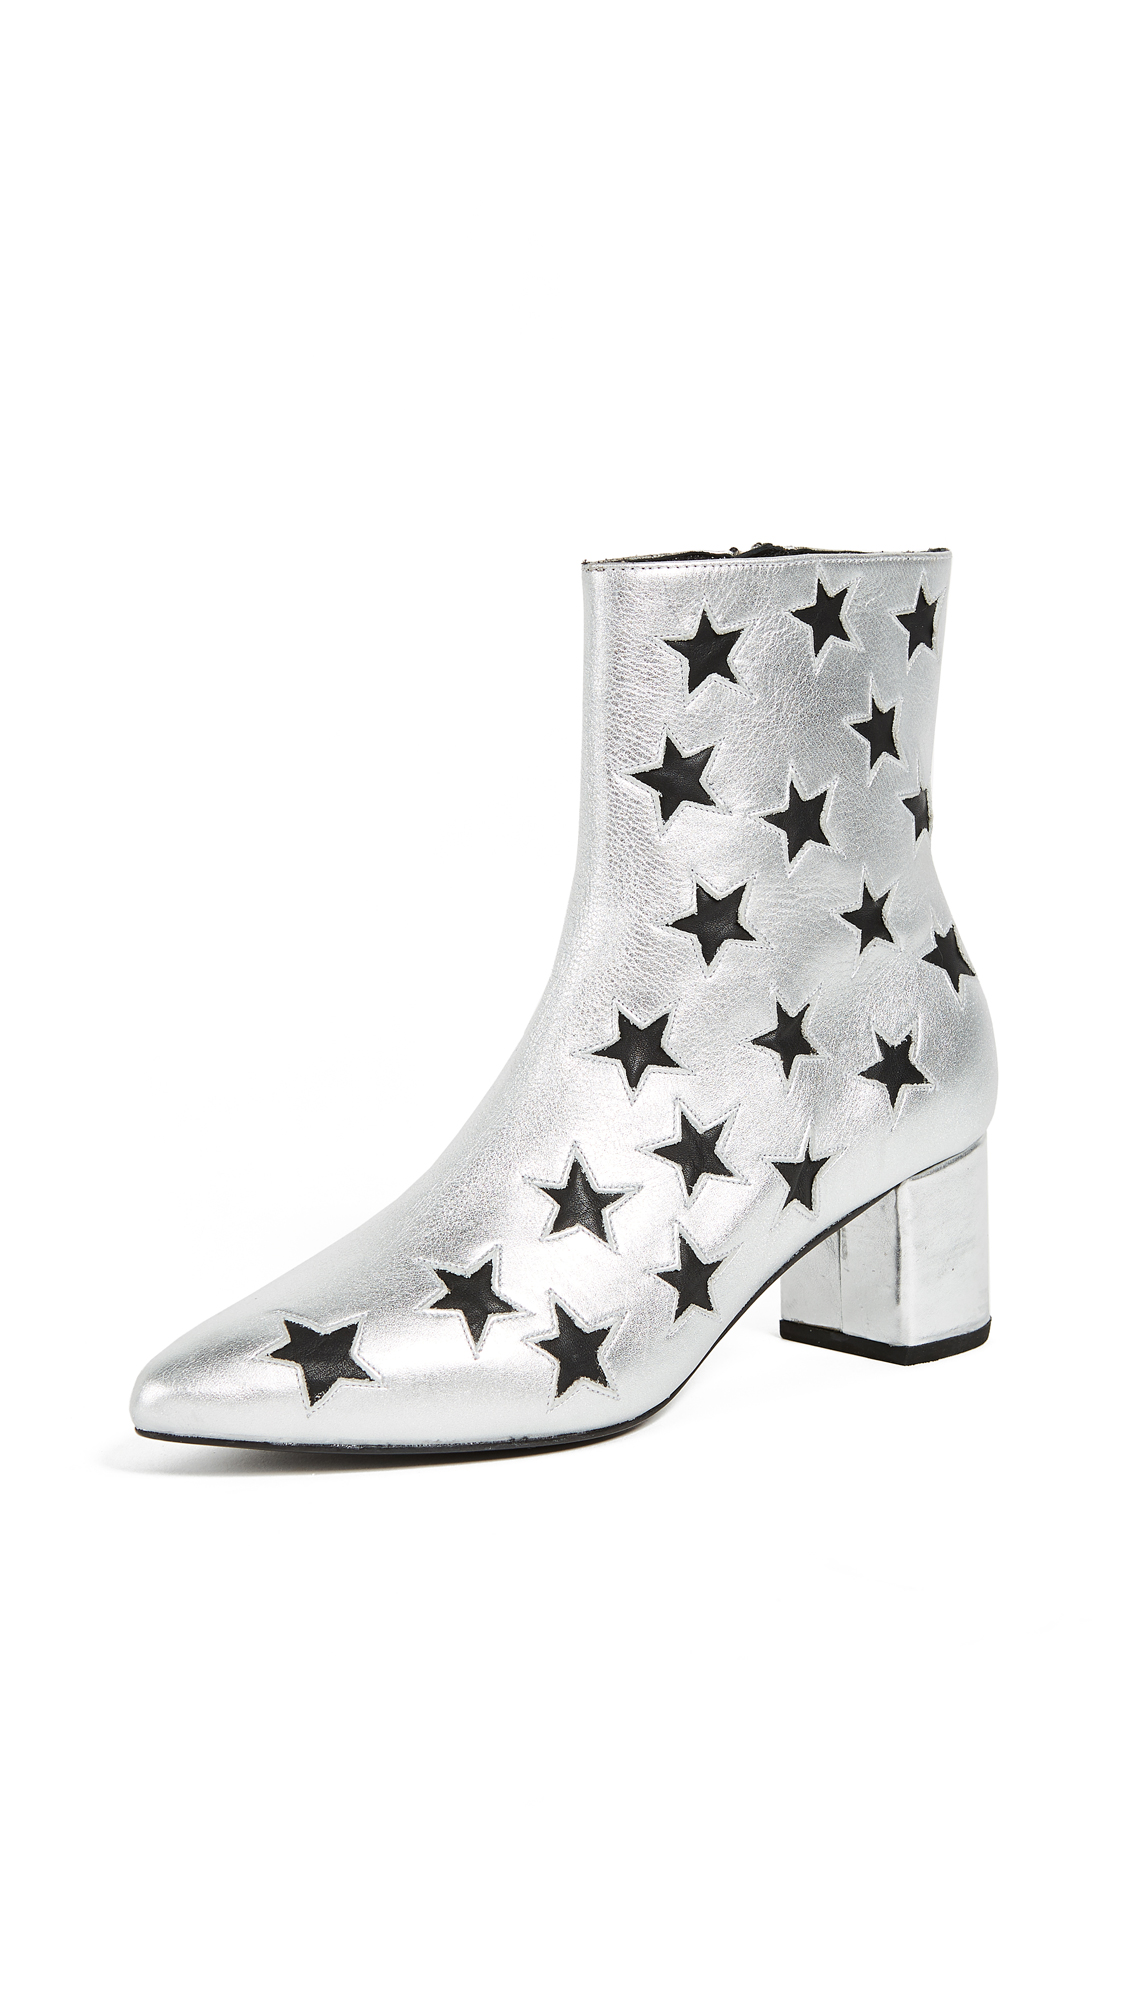 The Archive Madison Mid Zip Booties - Silver/Black